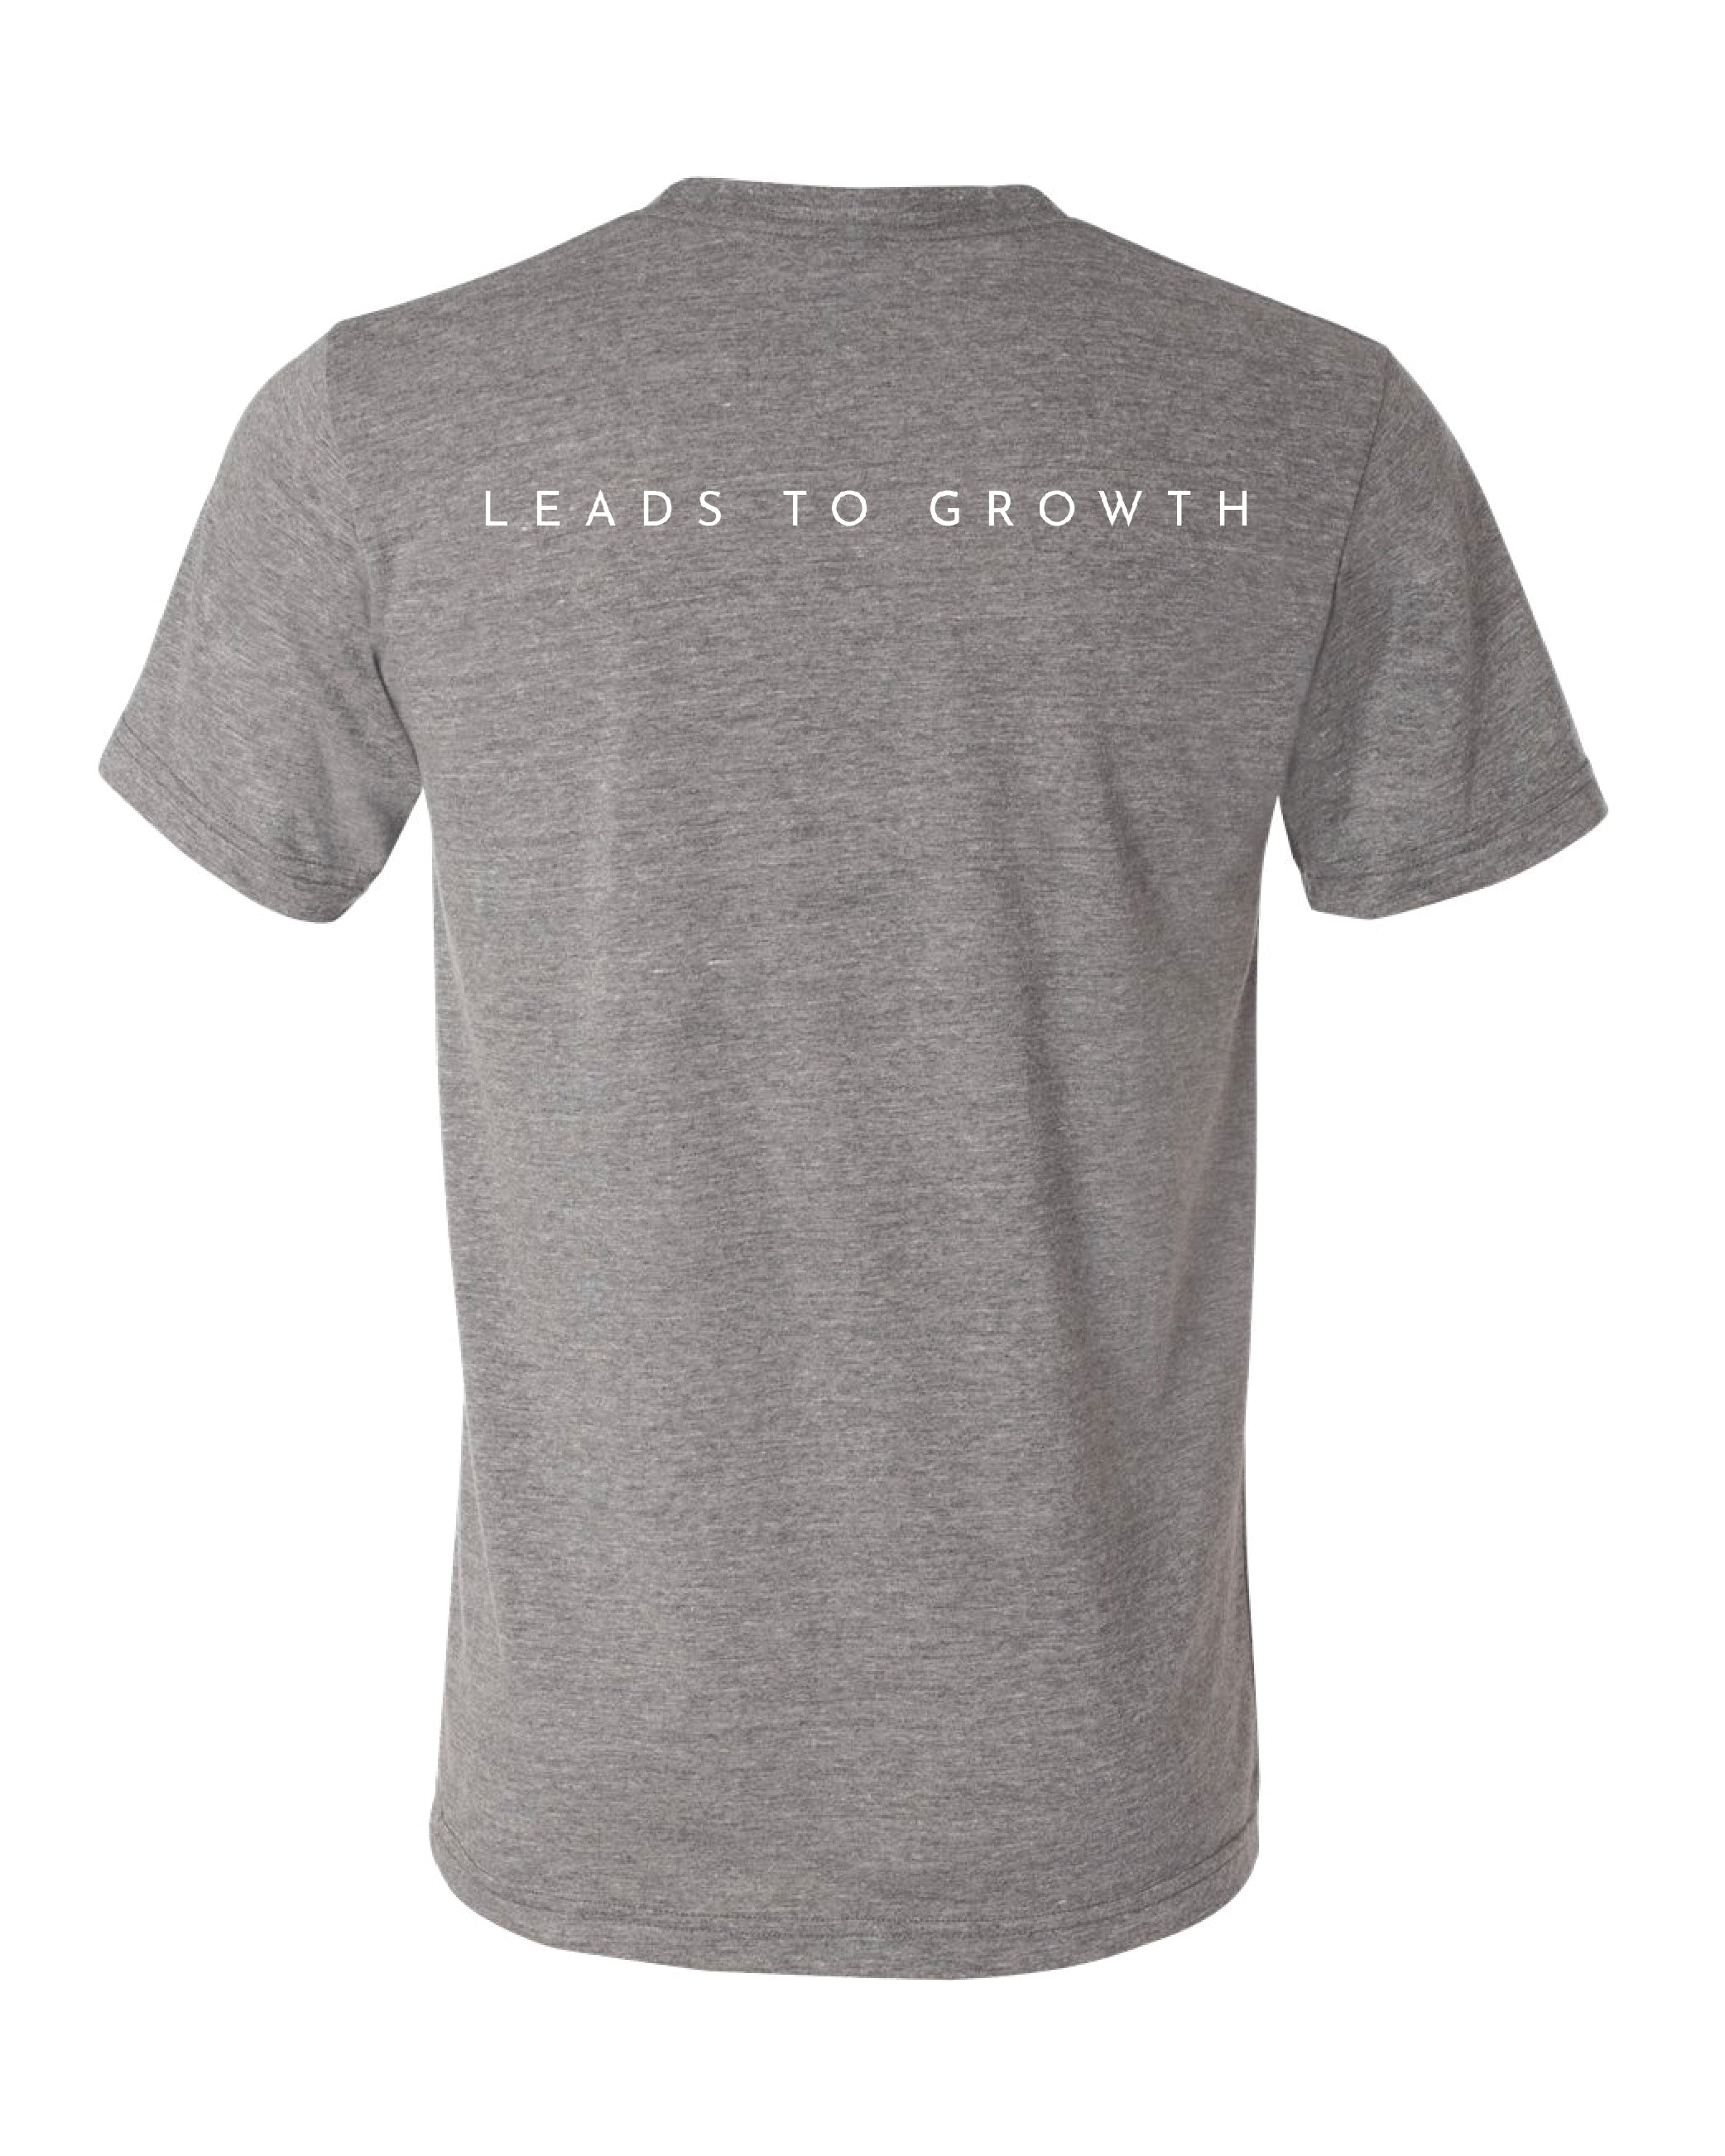 Super Soft Tri-Blend Unisex T-Shirt - Heather Grey